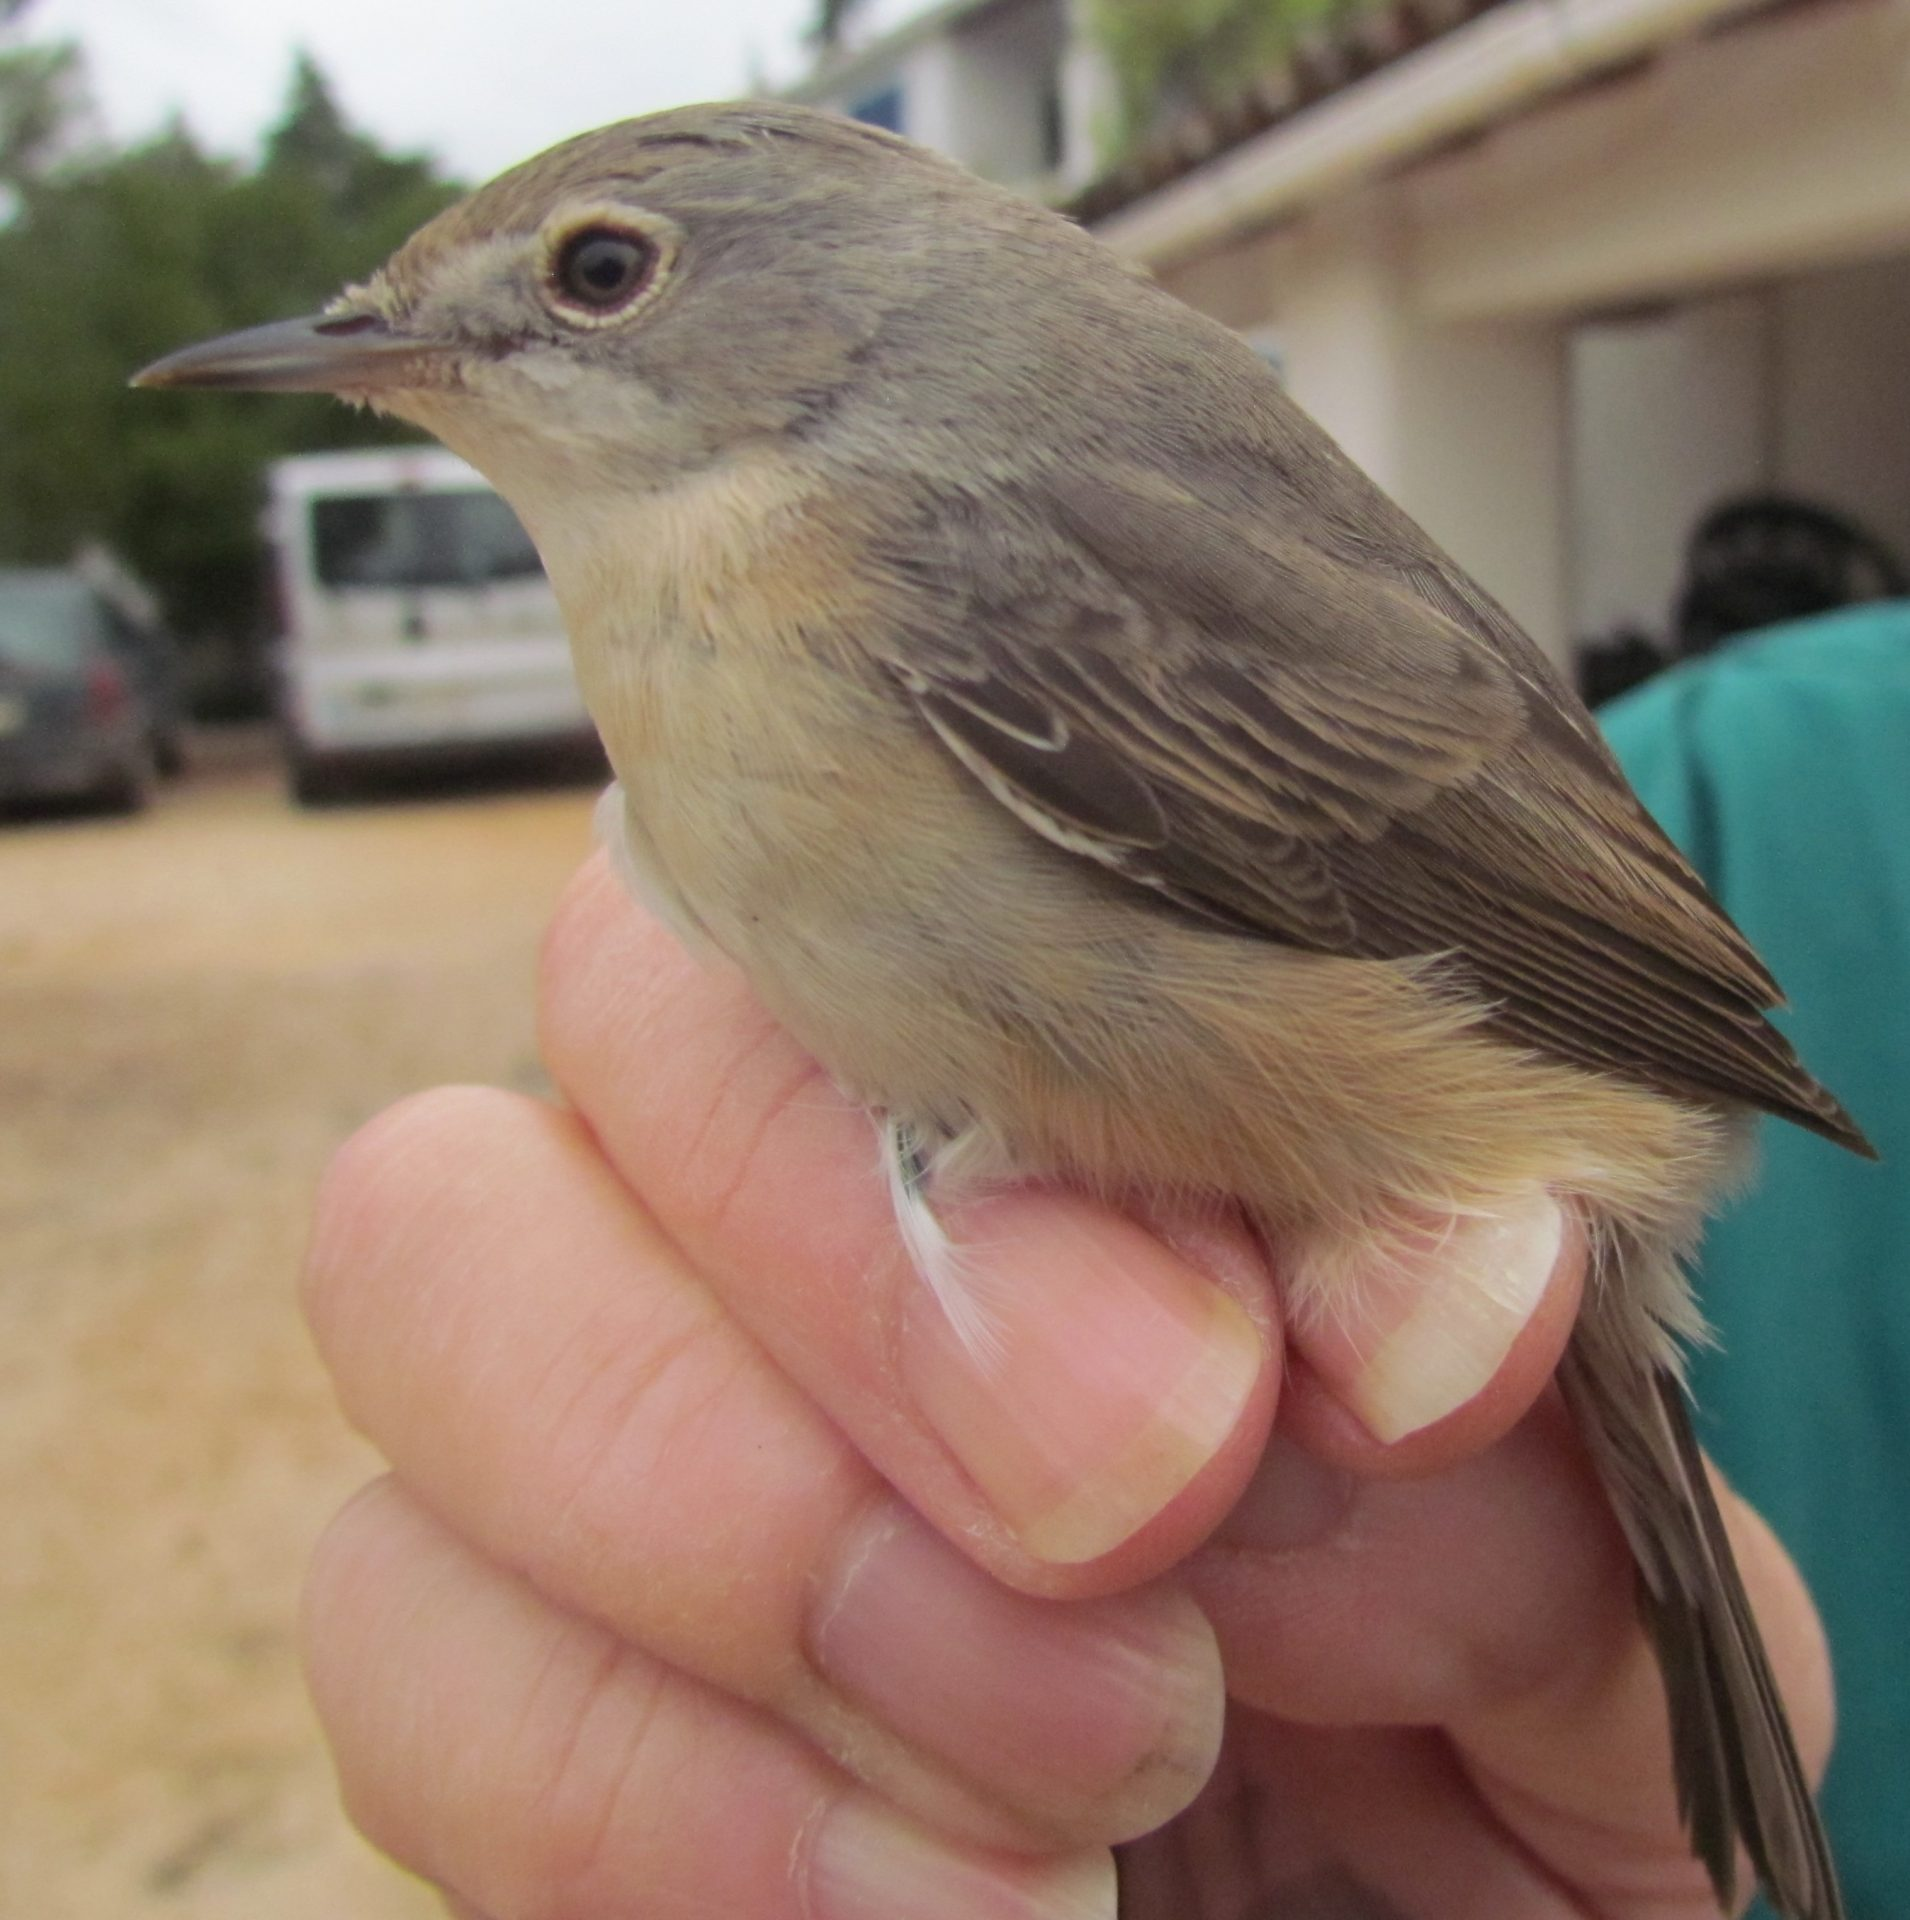 Subalpine Warbler in the hand